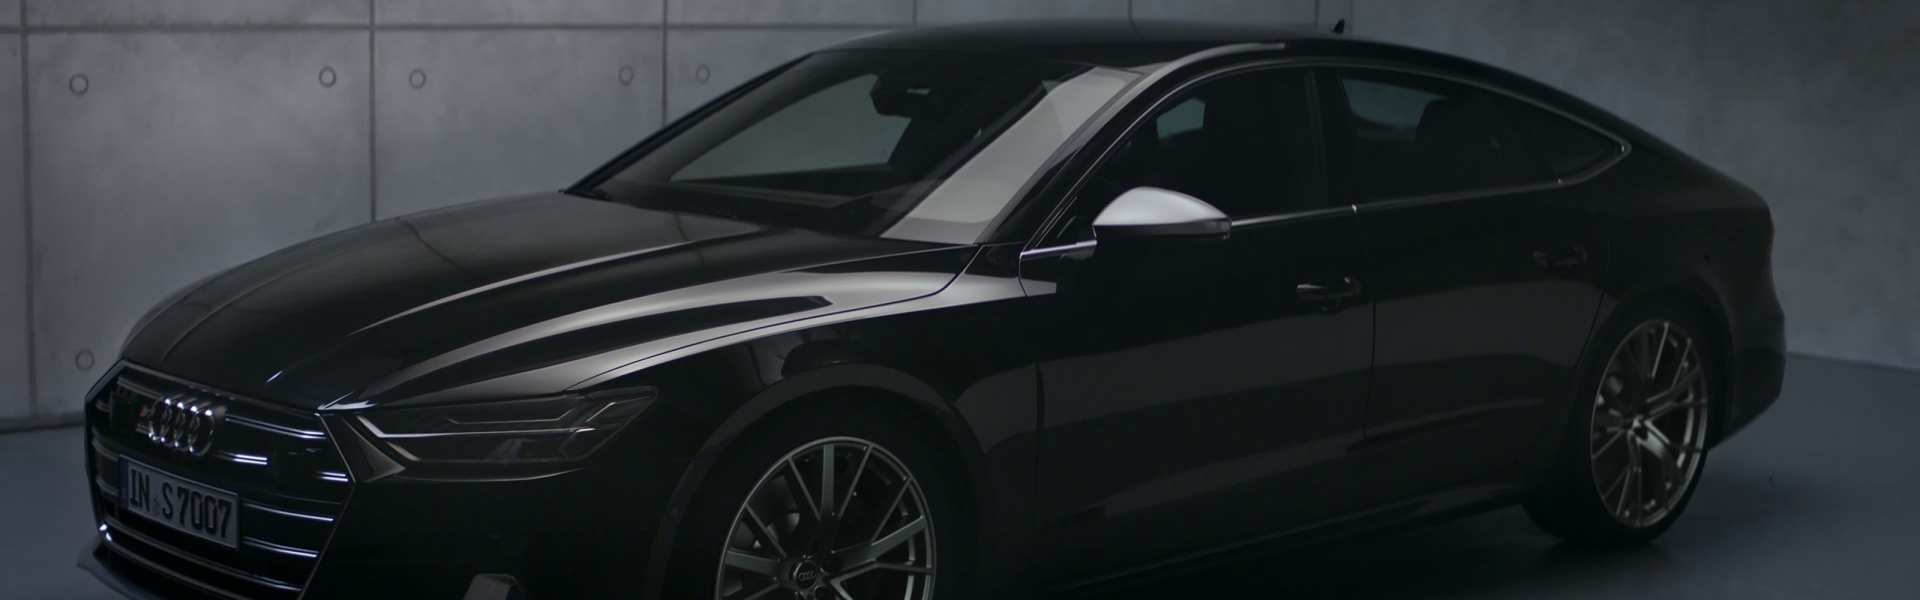 68 The 2020 Audi S7 History